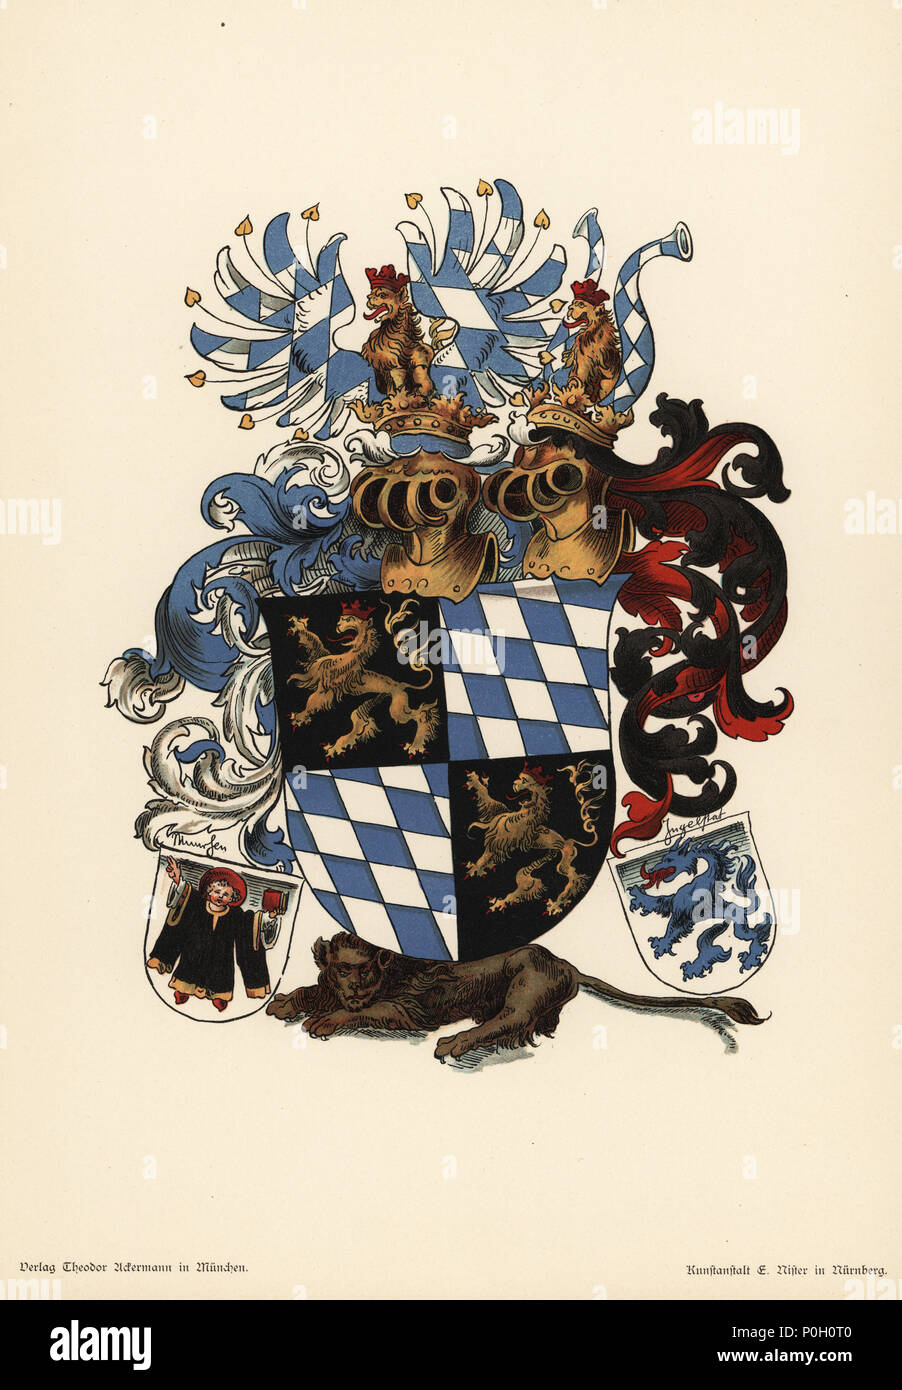 Armorial of the region of Pfalz Bavaria, Pfalzbayer Wappen. Arms of Bavaria, fusele en bande d'argent et d'azur, and Palatine lion. With the escutcheon of the city of Munich (a monk holding a bible). Chromolithograph from Otto Watzelberger's Beitraege zum Formenschatz der Heraldik (Contributions to the Vocabulary of Heraldry), Theodor Ackermann, Munich, 1900. Otto Watzelberger was Secretary of the Koeniglich Bayerischen Haus-Ritter-Ordens vom heiligen Georg (Royal Bavarian House Equestrian Order of Saint George). - Stock Image